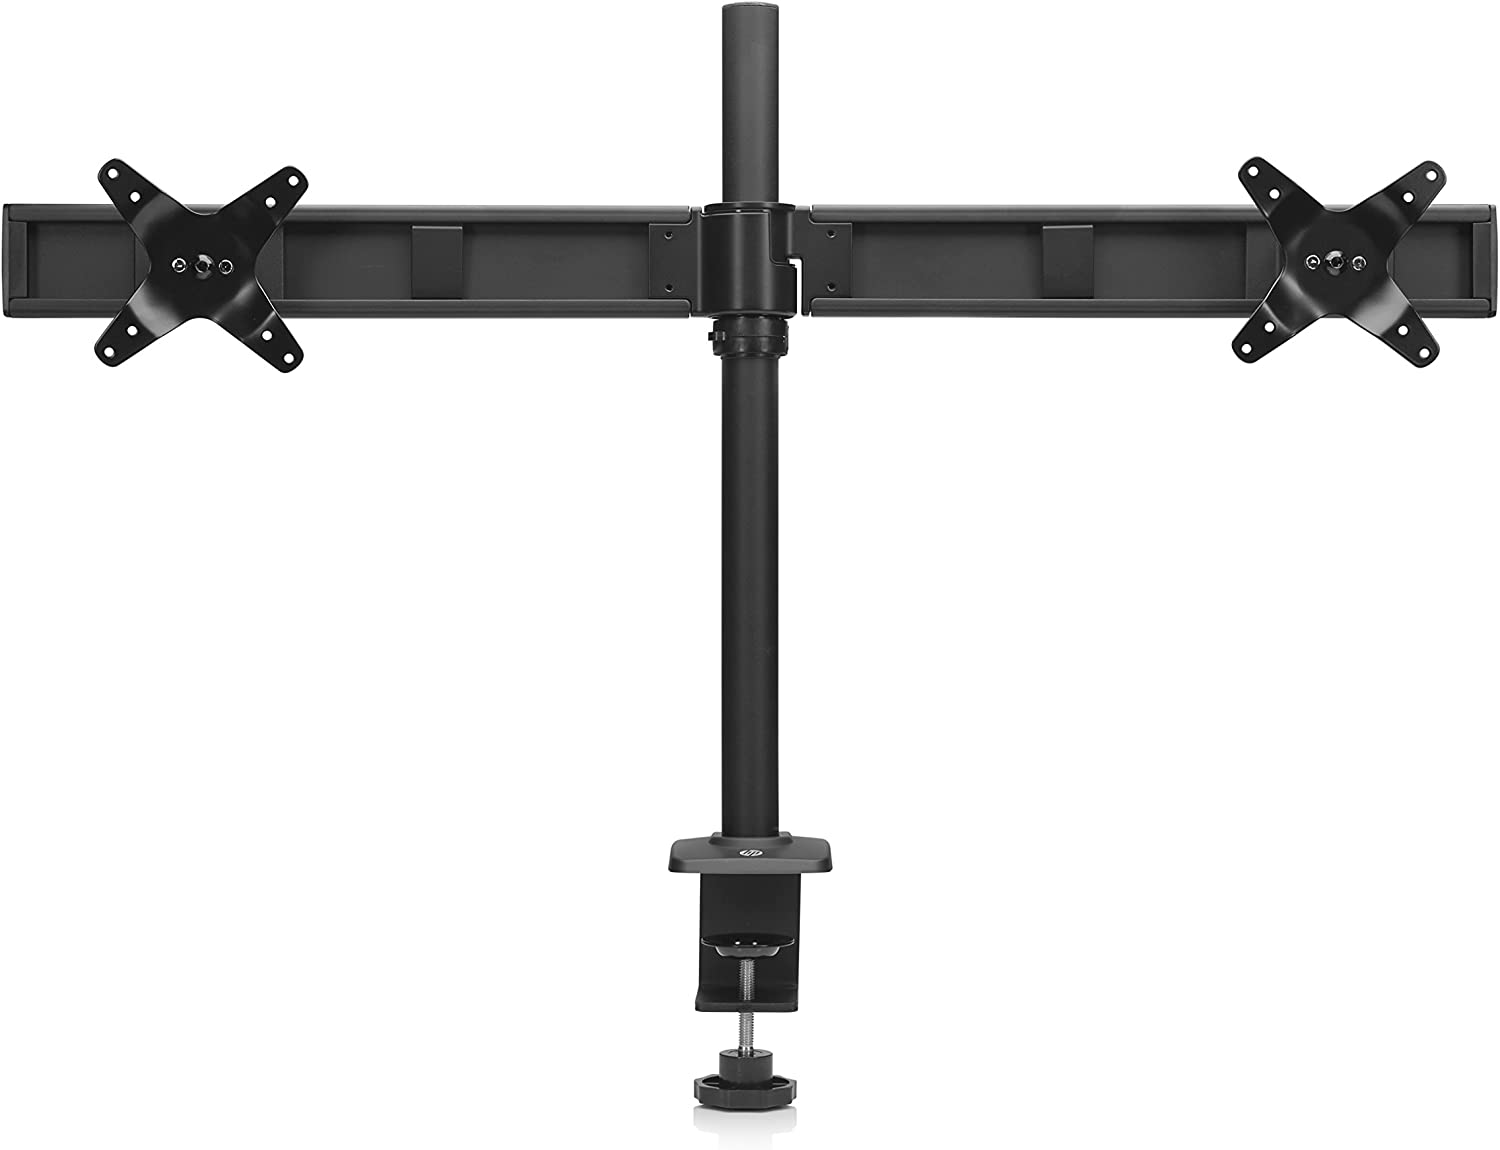 HP Pavilion Dual Monitor Stand (Black)